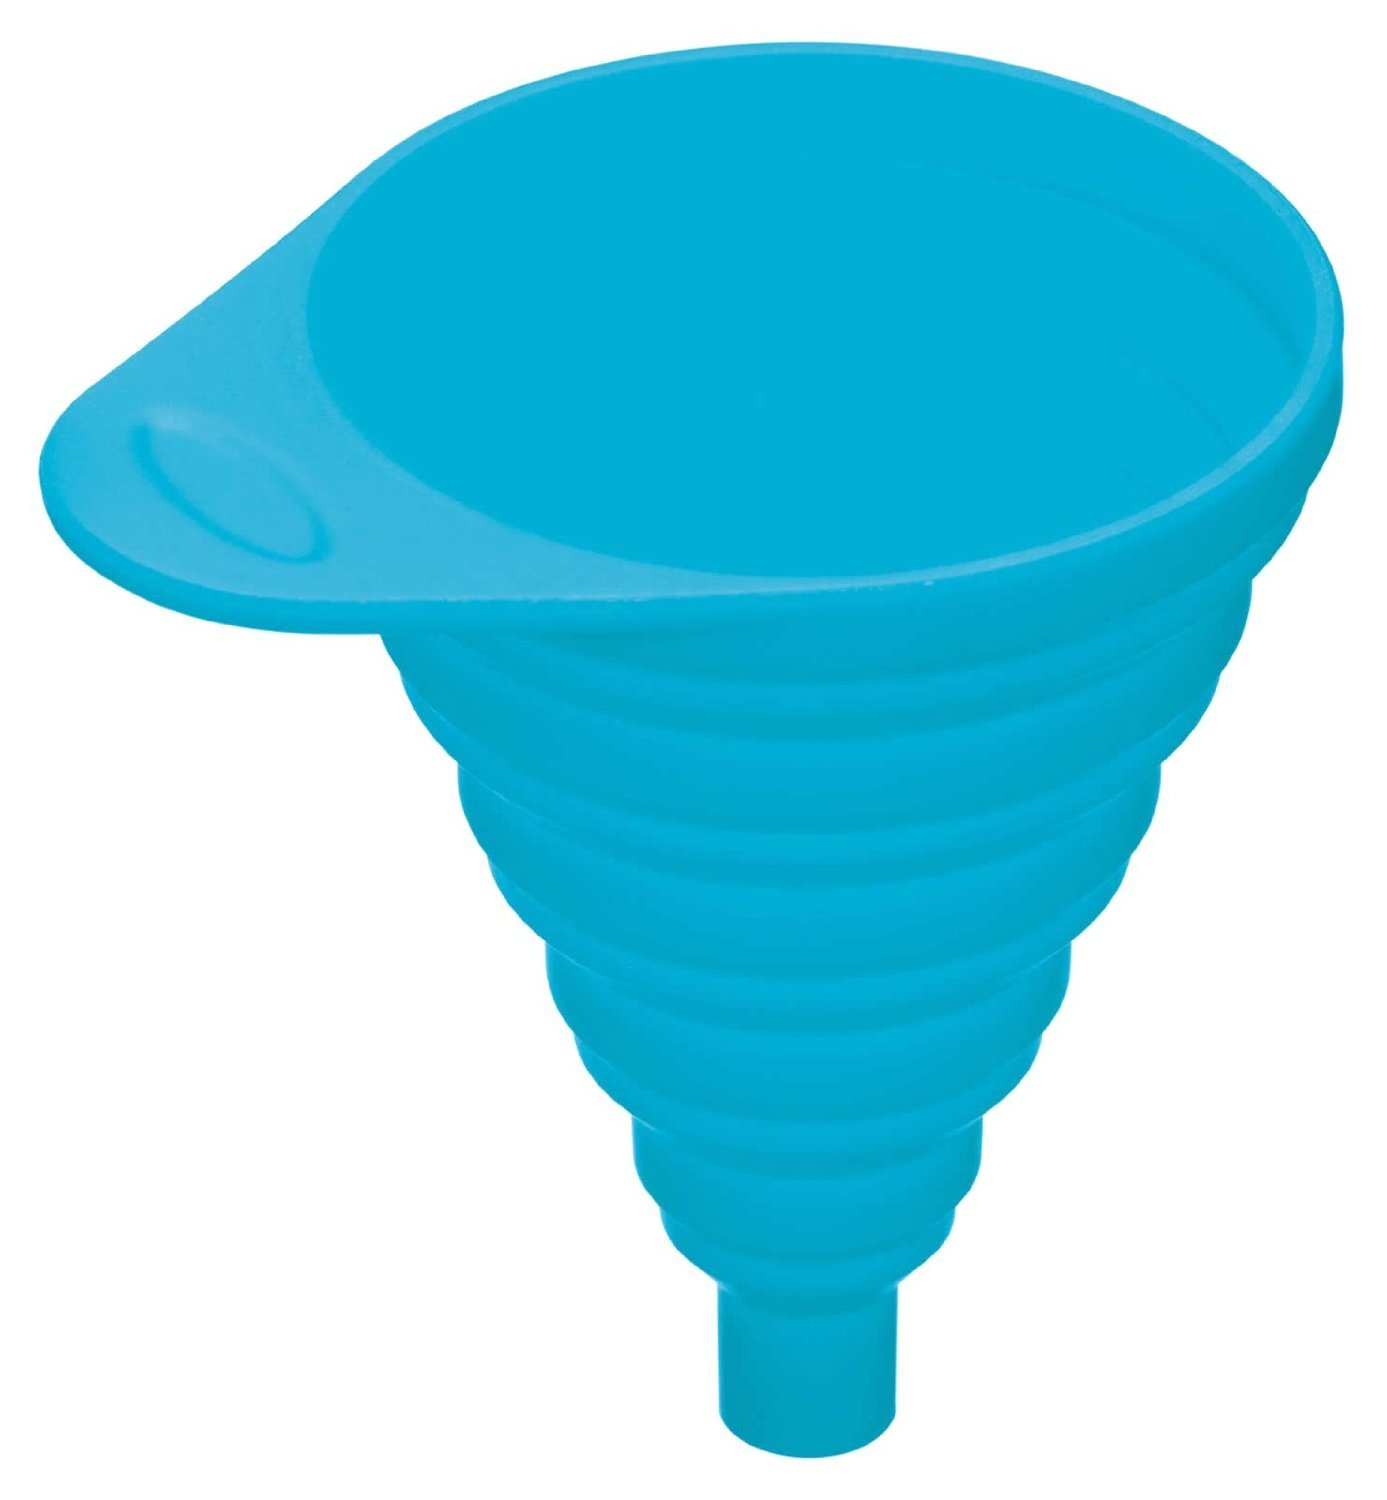 Hosaire Silicone Collapsible Funnel Foldable Funnel Heat Resistant Hopper Filter Funnel Blue